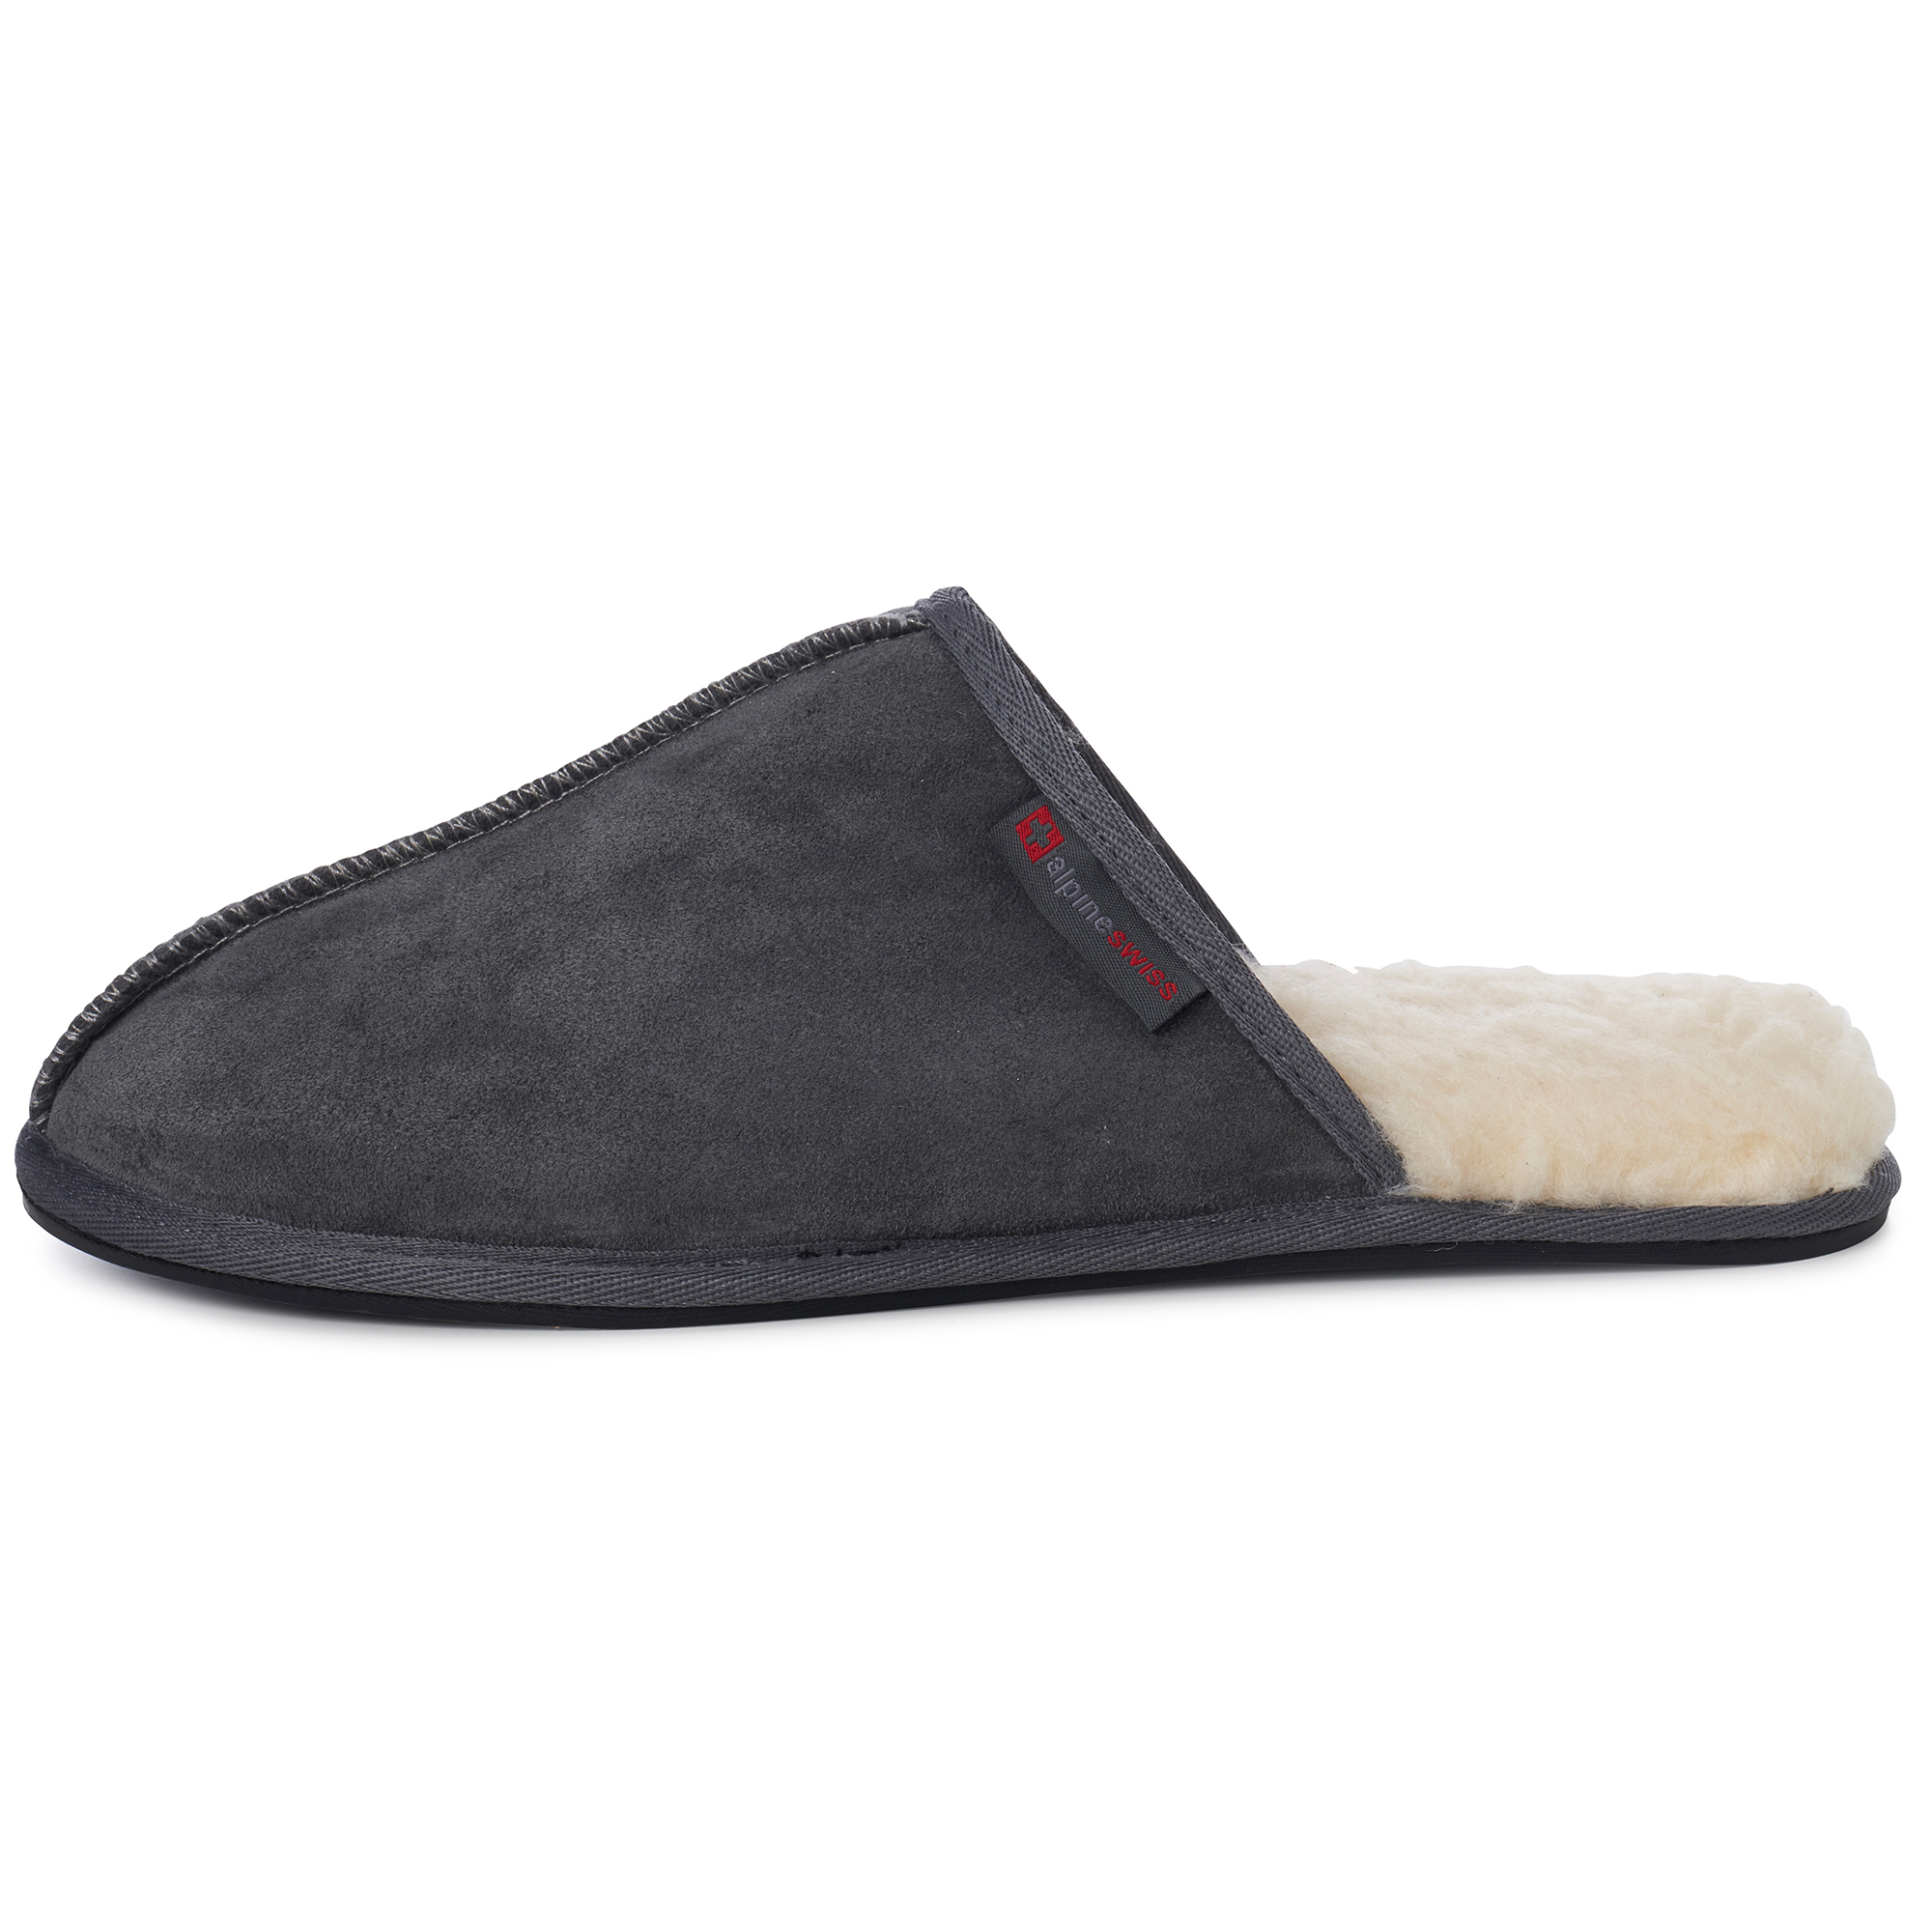 Alpine-Swiss-Mens-Suede-Memory-Foam-Scuff-Slippers-Comfort-Slip-On-House-Shoes thumbnail 25